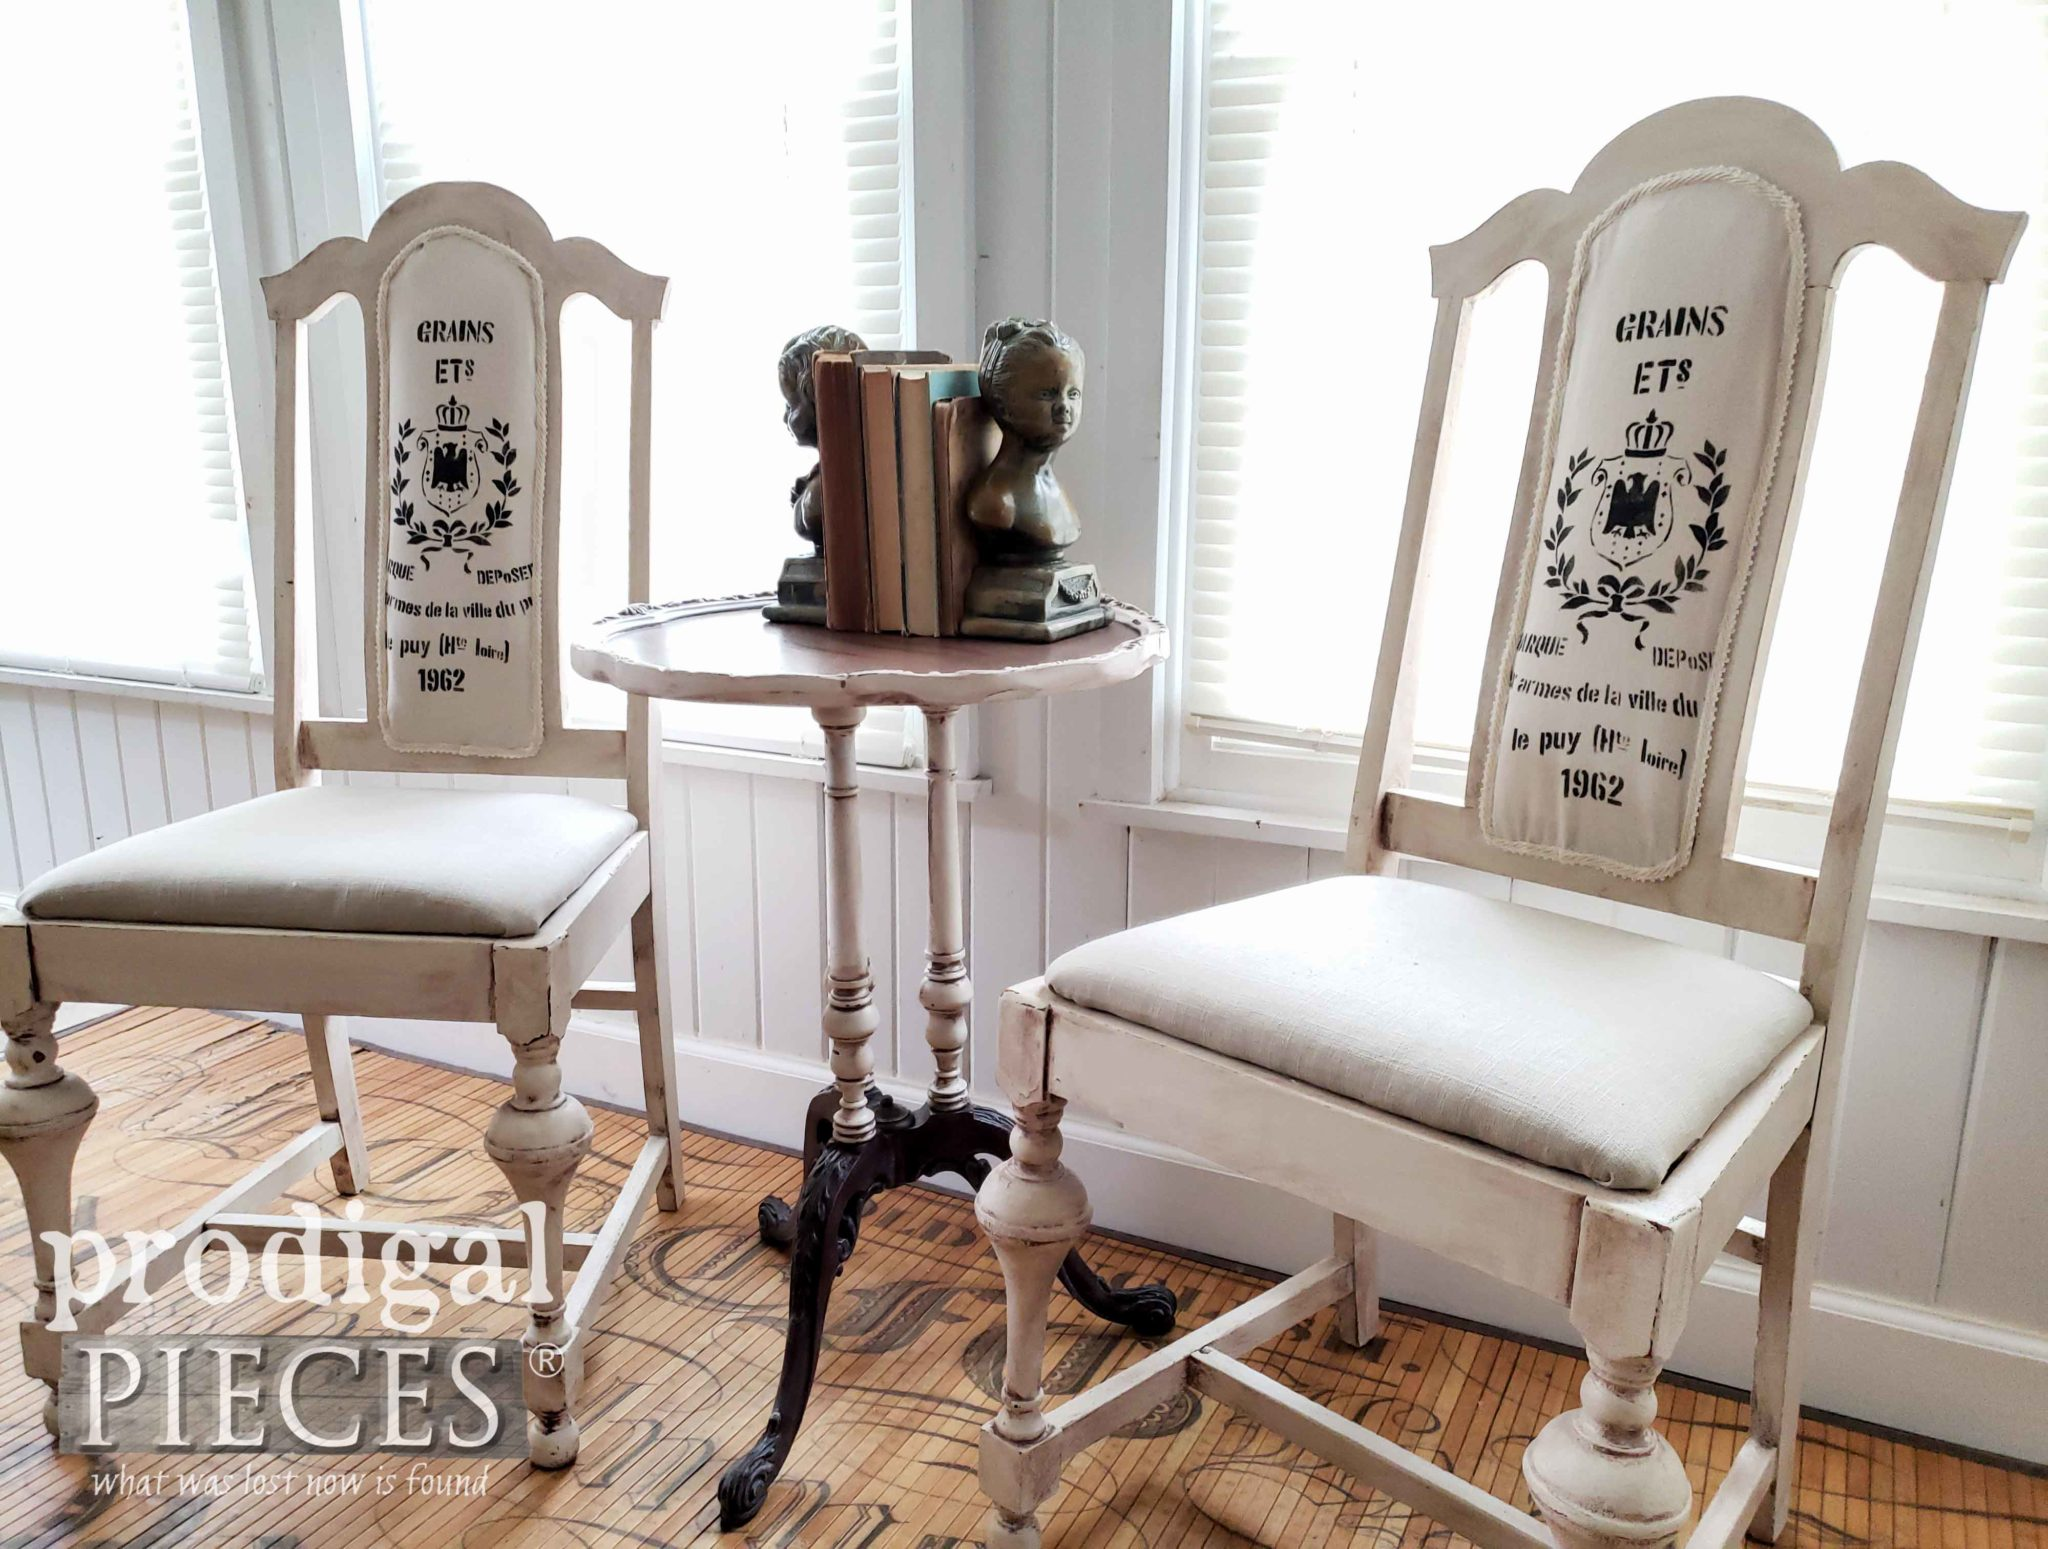 Shabby Chic Grain Sack Antique Dining Chairs by Larissa of Prodigal Pieces | prodigalpieces.com #prodigalpieces #home #furniture #diy #homedecor